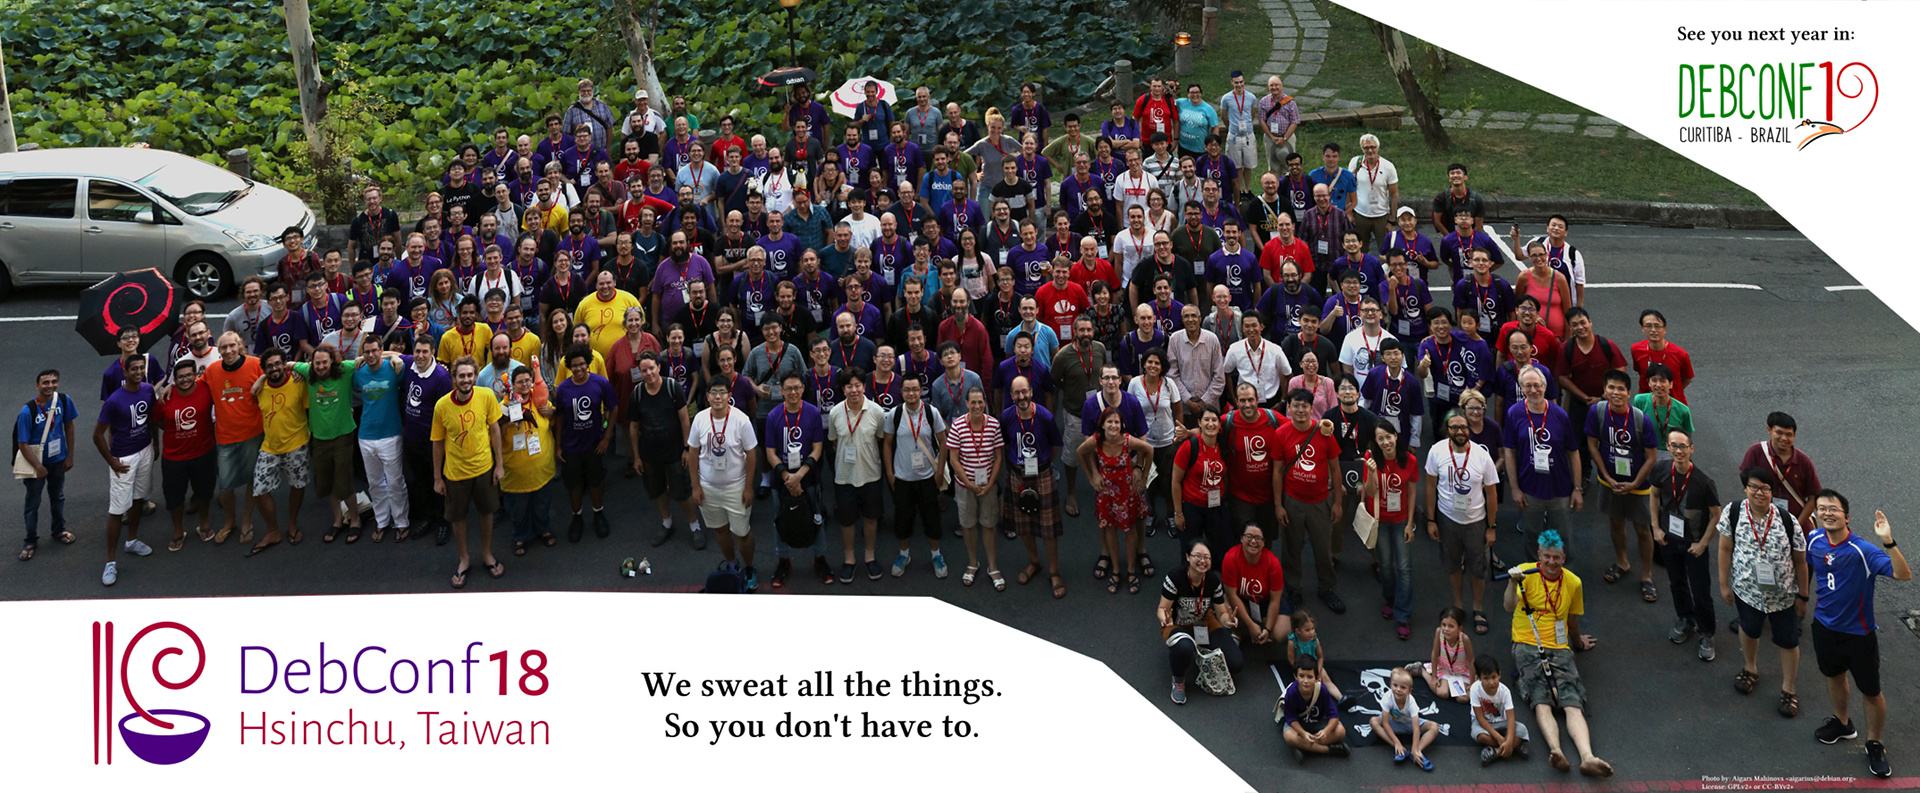 DebConf18 group photo - click to enlarge